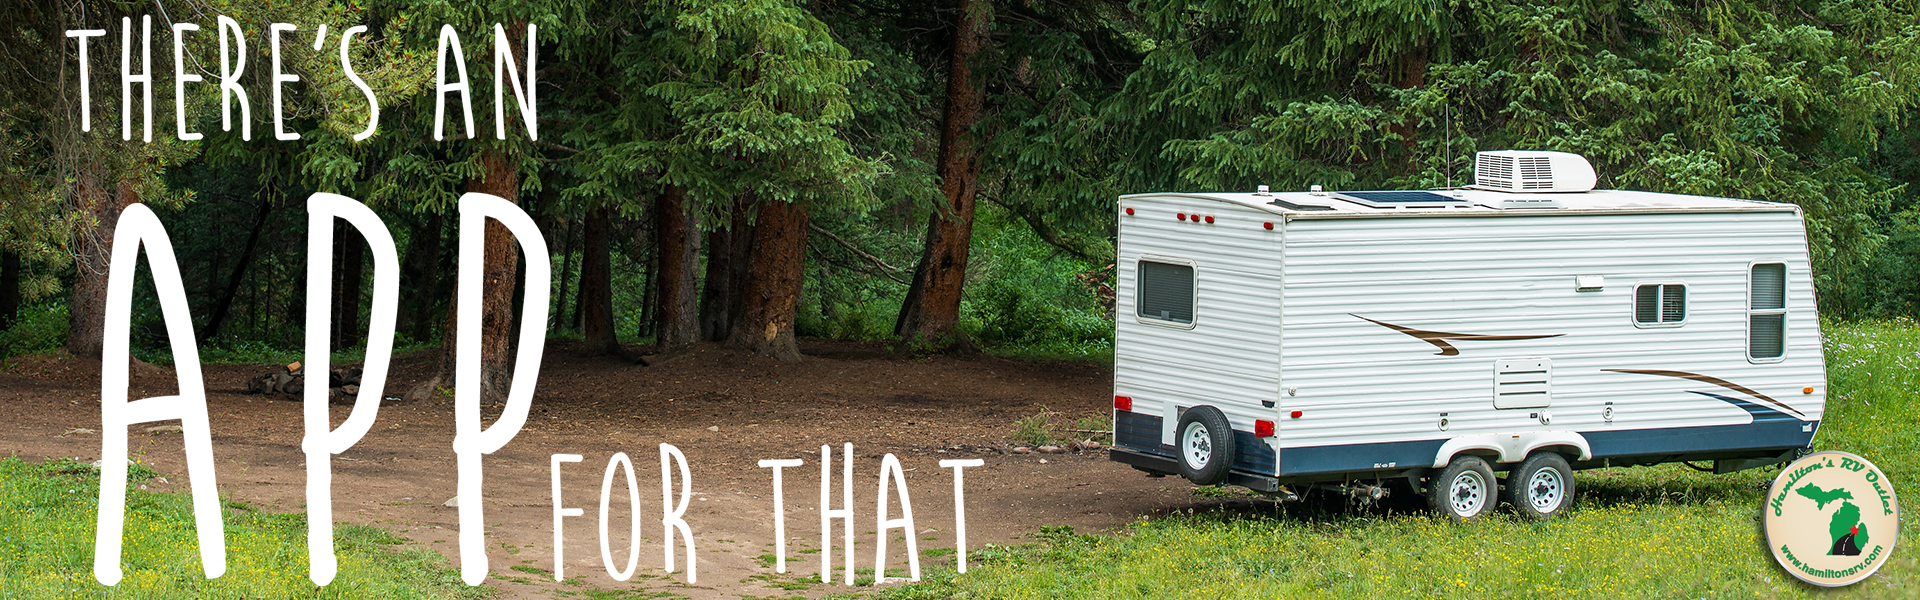 boondocking there's an app for that